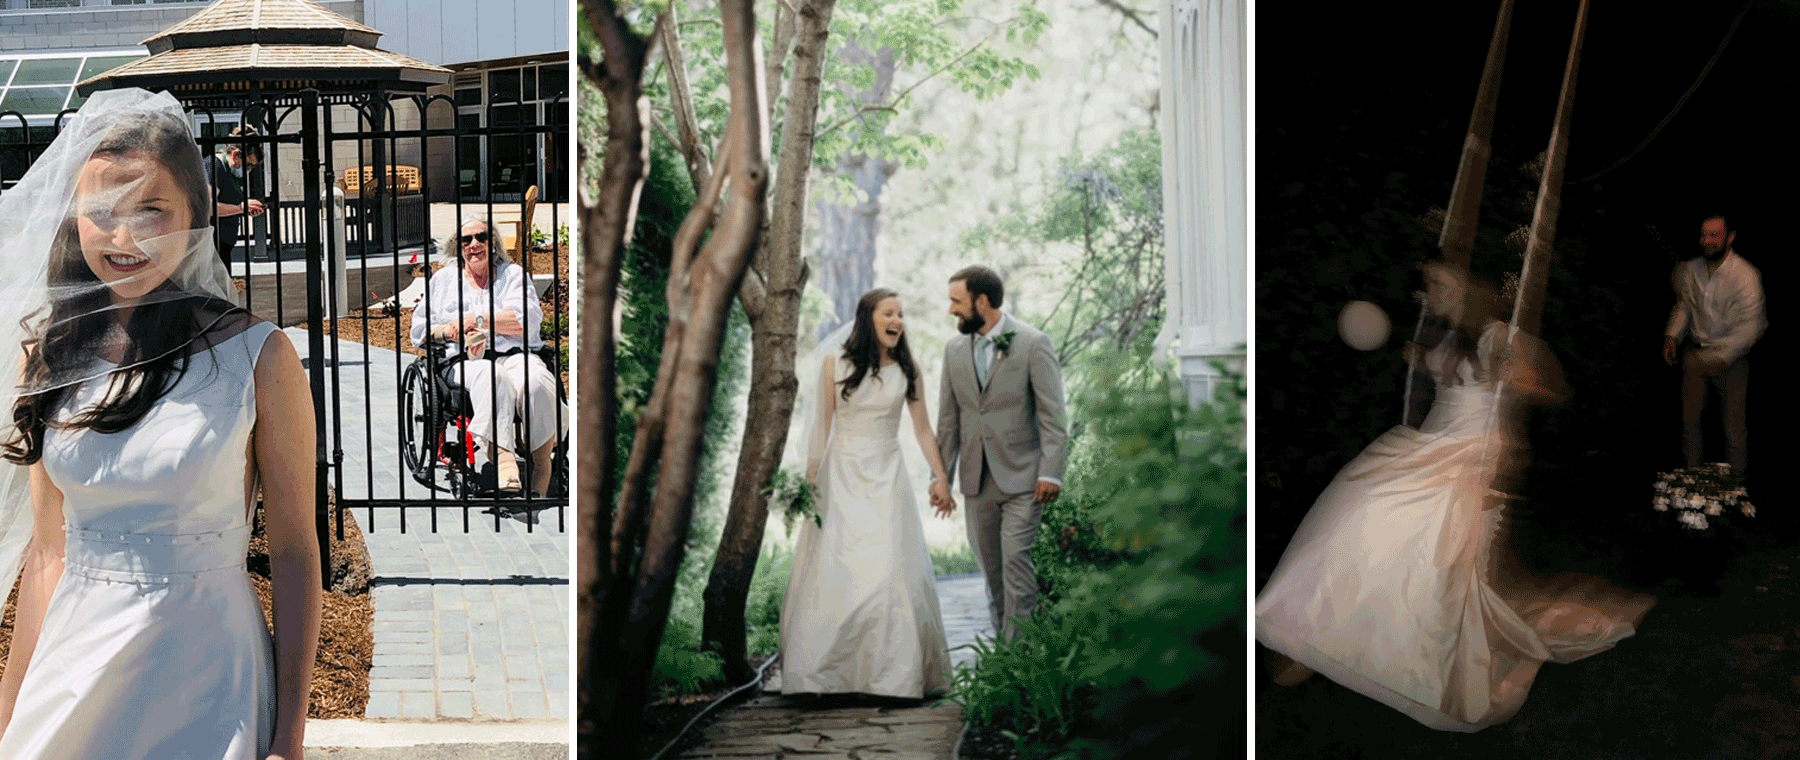 Magical, raw, different: Inside a pandemic wedding